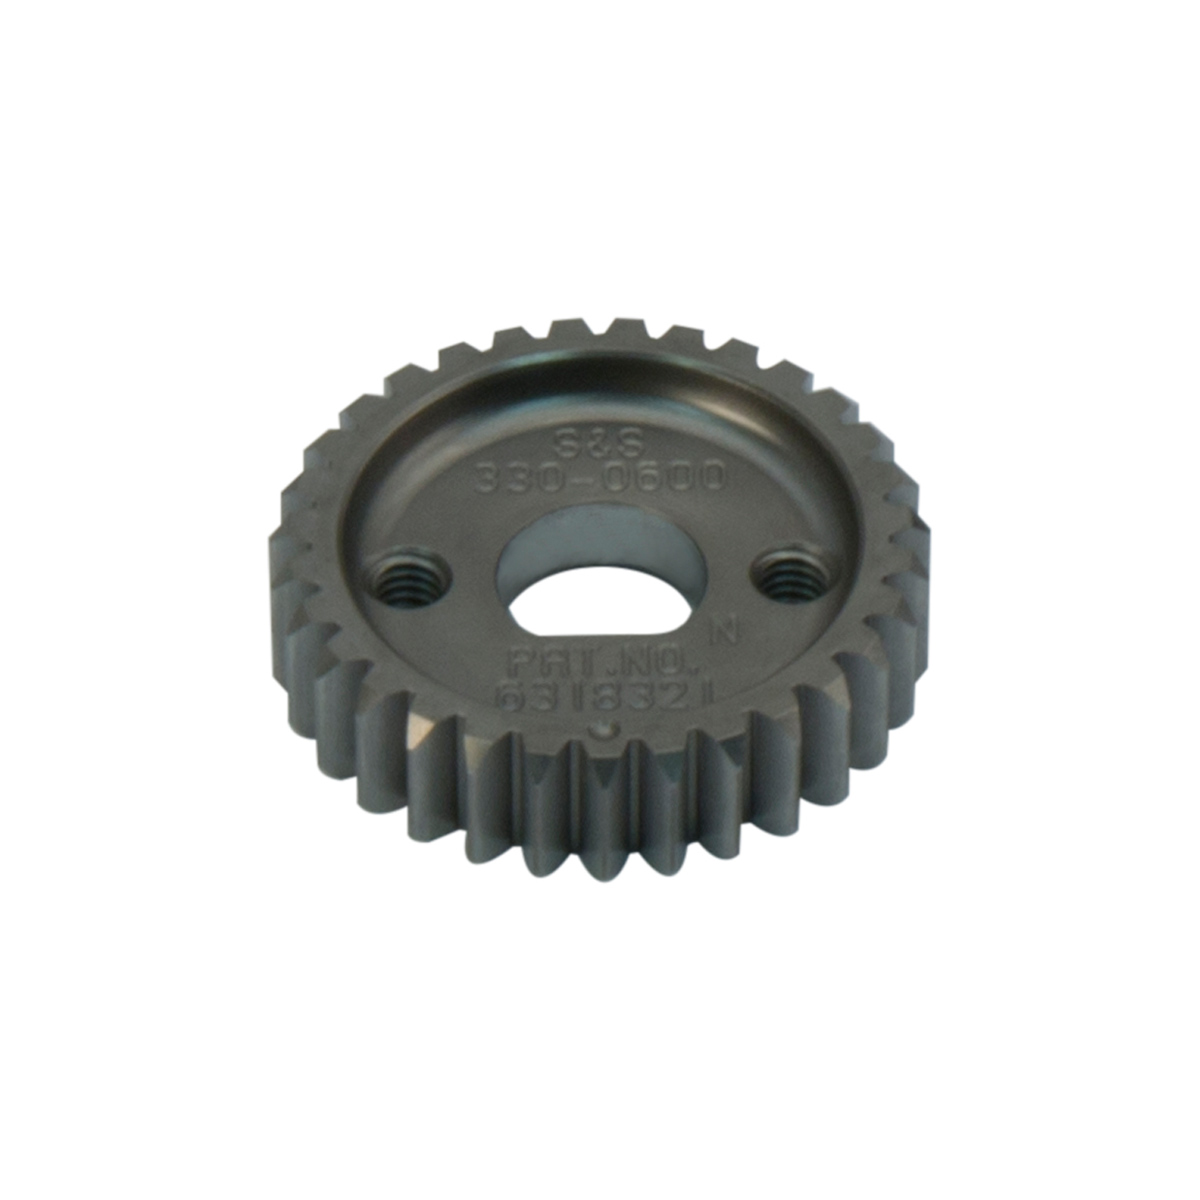 S&S Cycle Pinion Gear, Standard Size